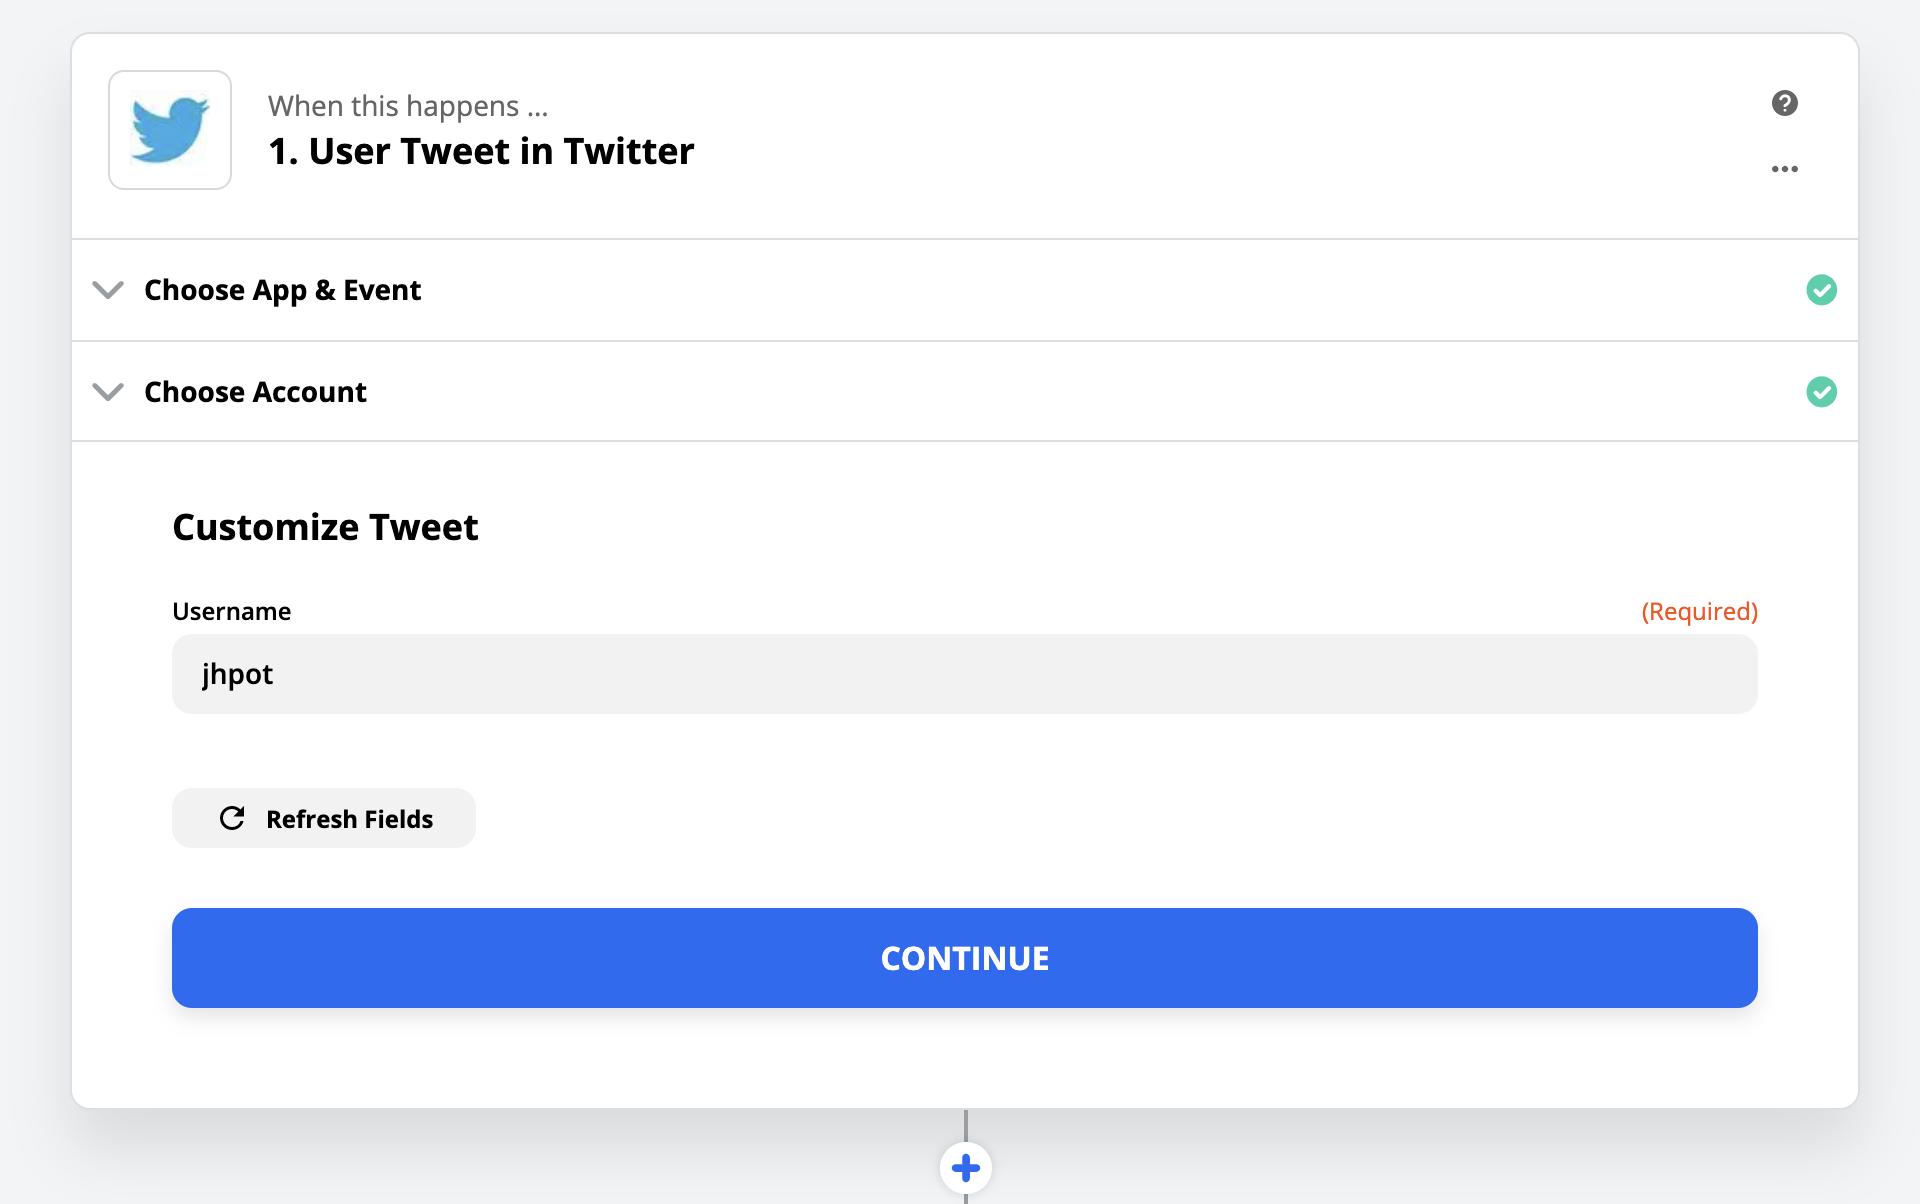 Searching for a specific Twitter user in Zapier